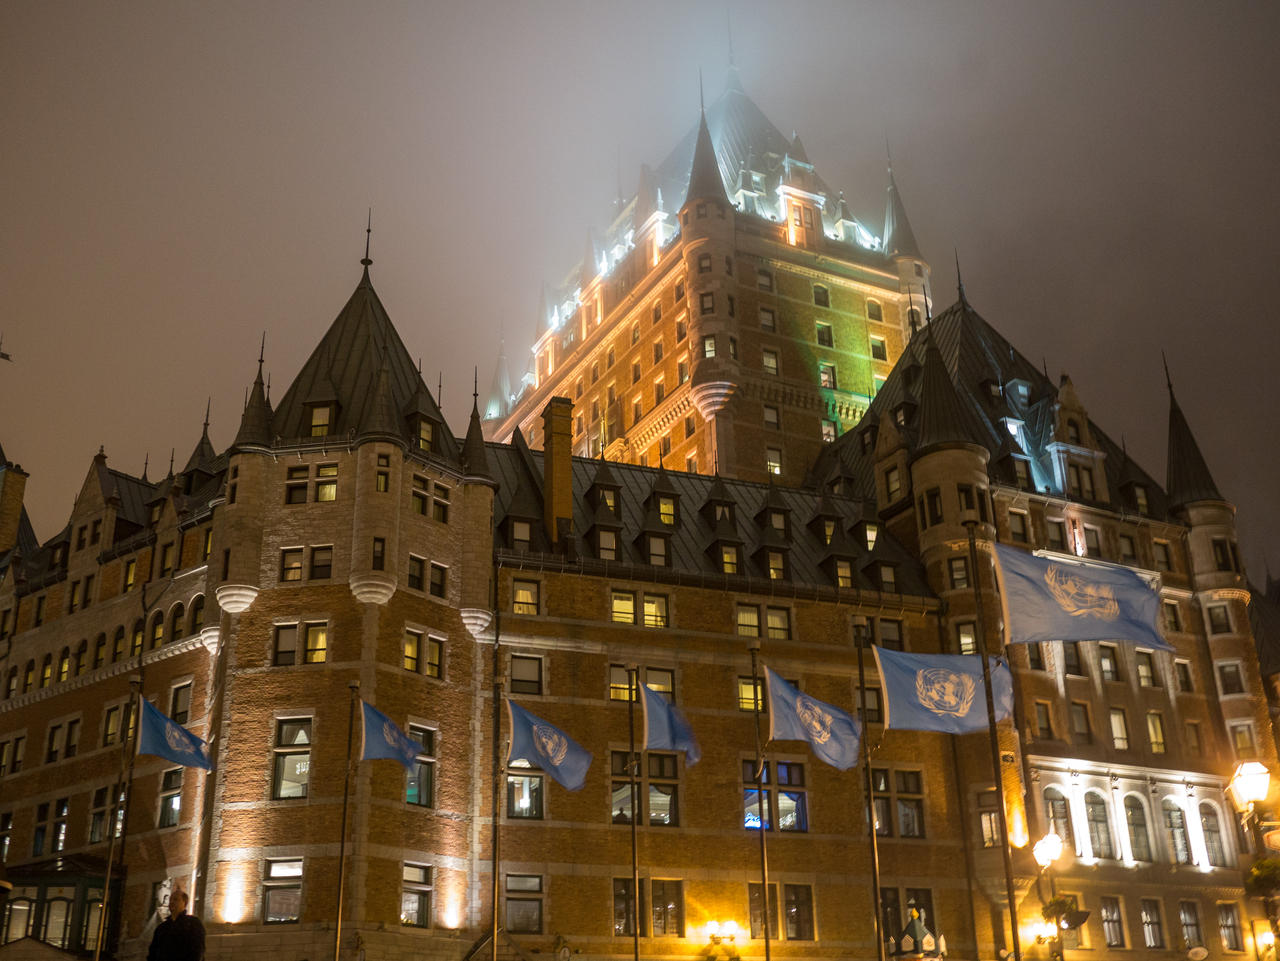 Hotel Fairmont Chateau Frontenac by the3dman